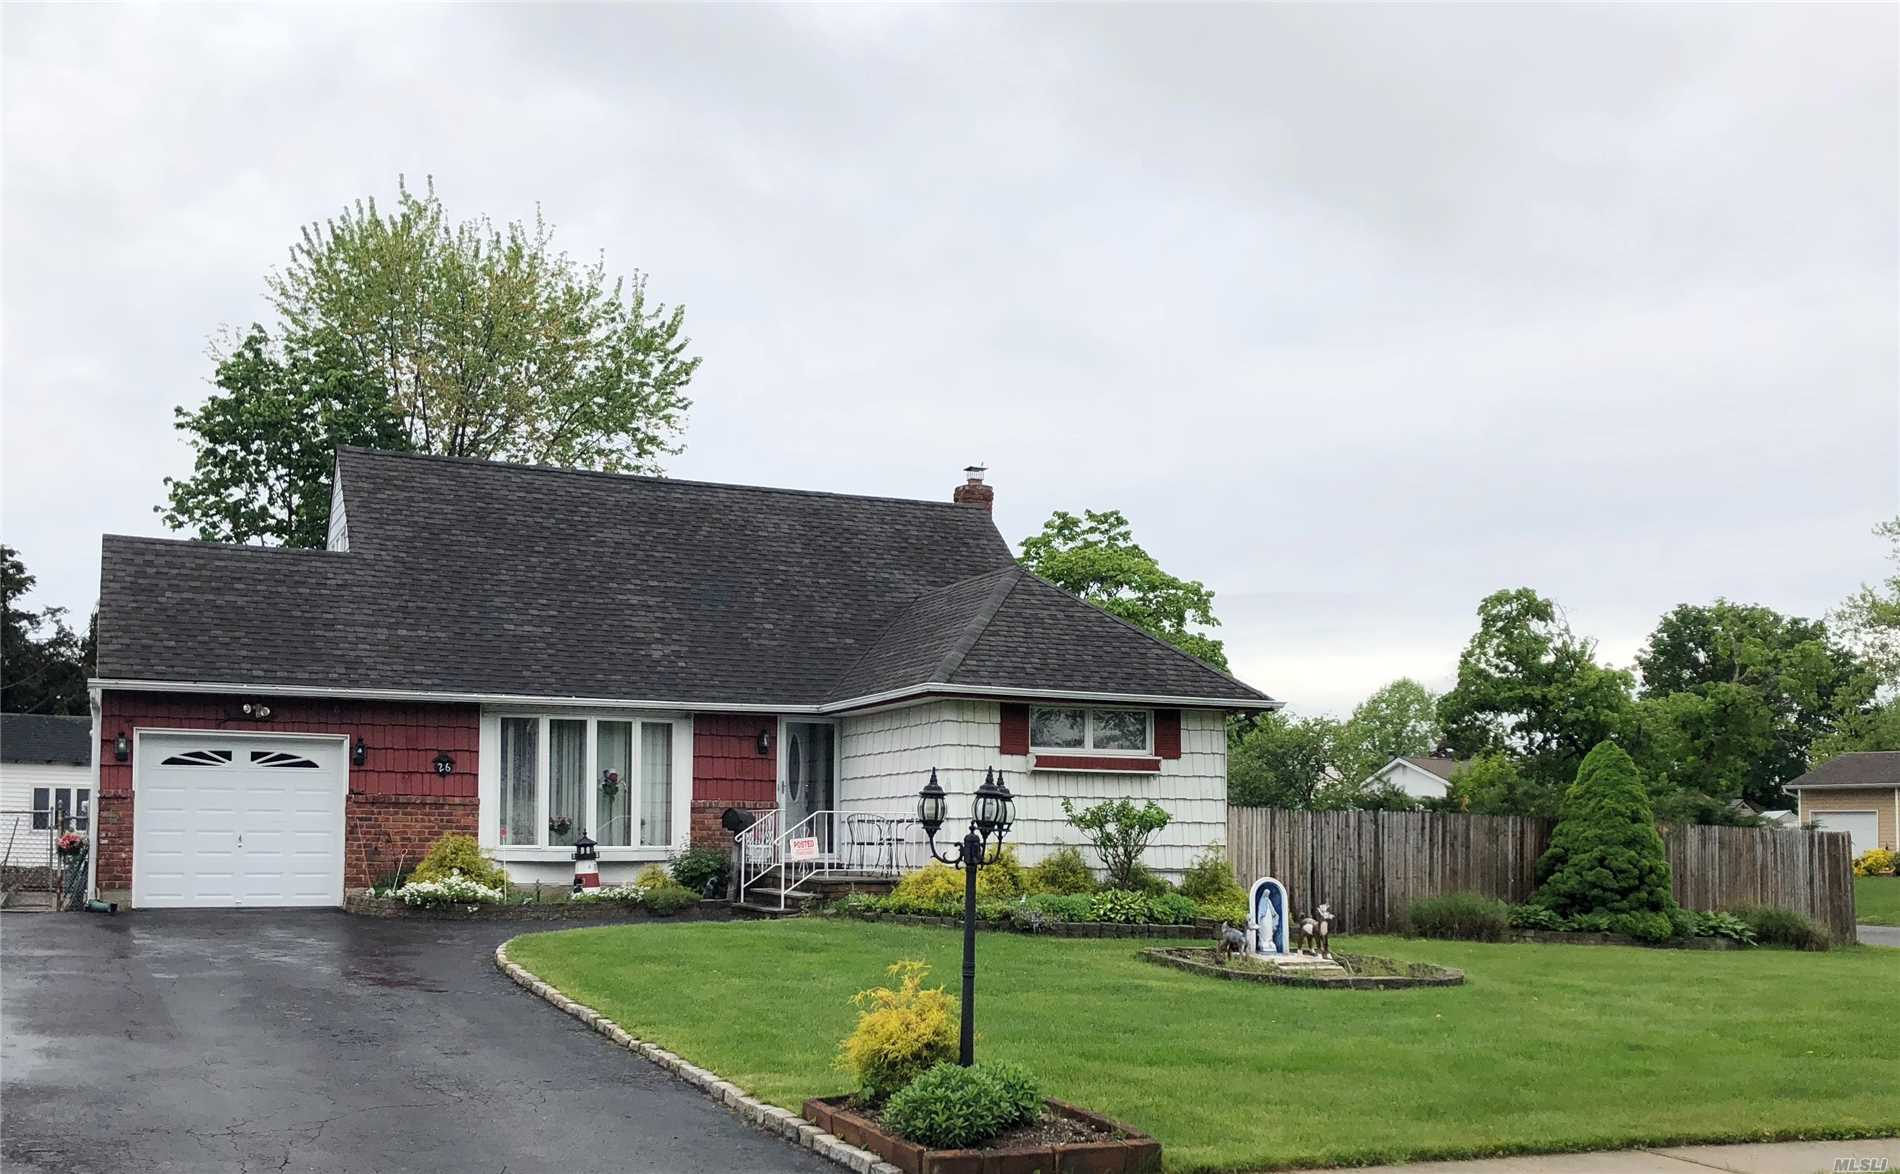 Fantastic Opportunity For Large Or Expanding Family In The Commack School District. Exp Ranch On Corner Property Of 144X100Ft Lined With Leland Cyress- Feat: Peach, Fig & Apple Trees. 5 Bedrooms, 2 Full Baths. Eat In Kitchen W/Sliders To Deck. Formal Dining Room, Living Room. Full Basement Partially Finished. Gas/Ha Heating & Cac. Newer Roof, Windows & Garage Door. Video Camera Surveillance System.